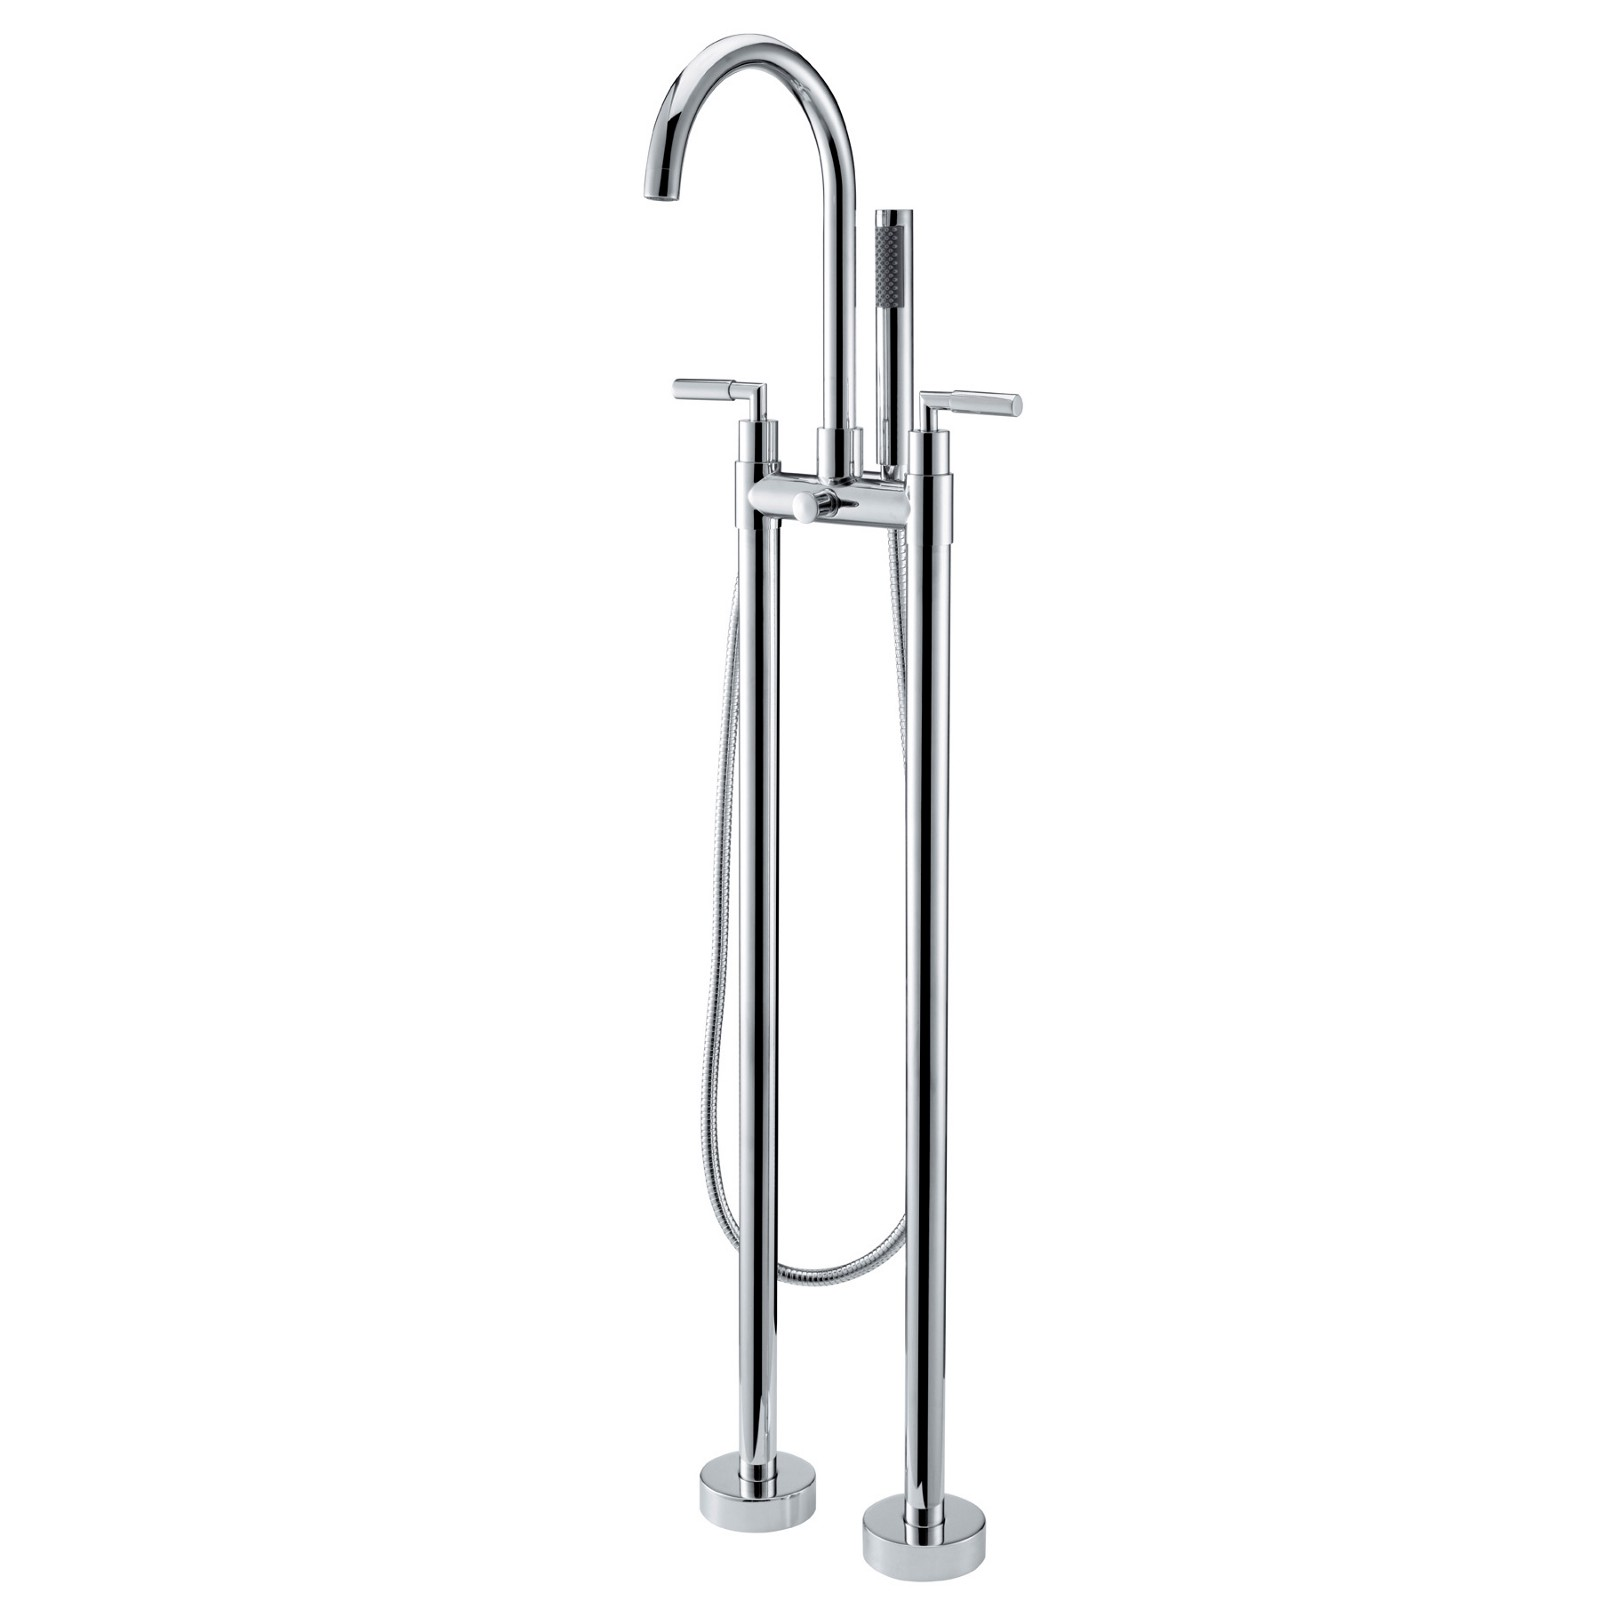 Best Stev Floor Mounted Clawfoot Tub Filler Faucet For Freestanding Tubs